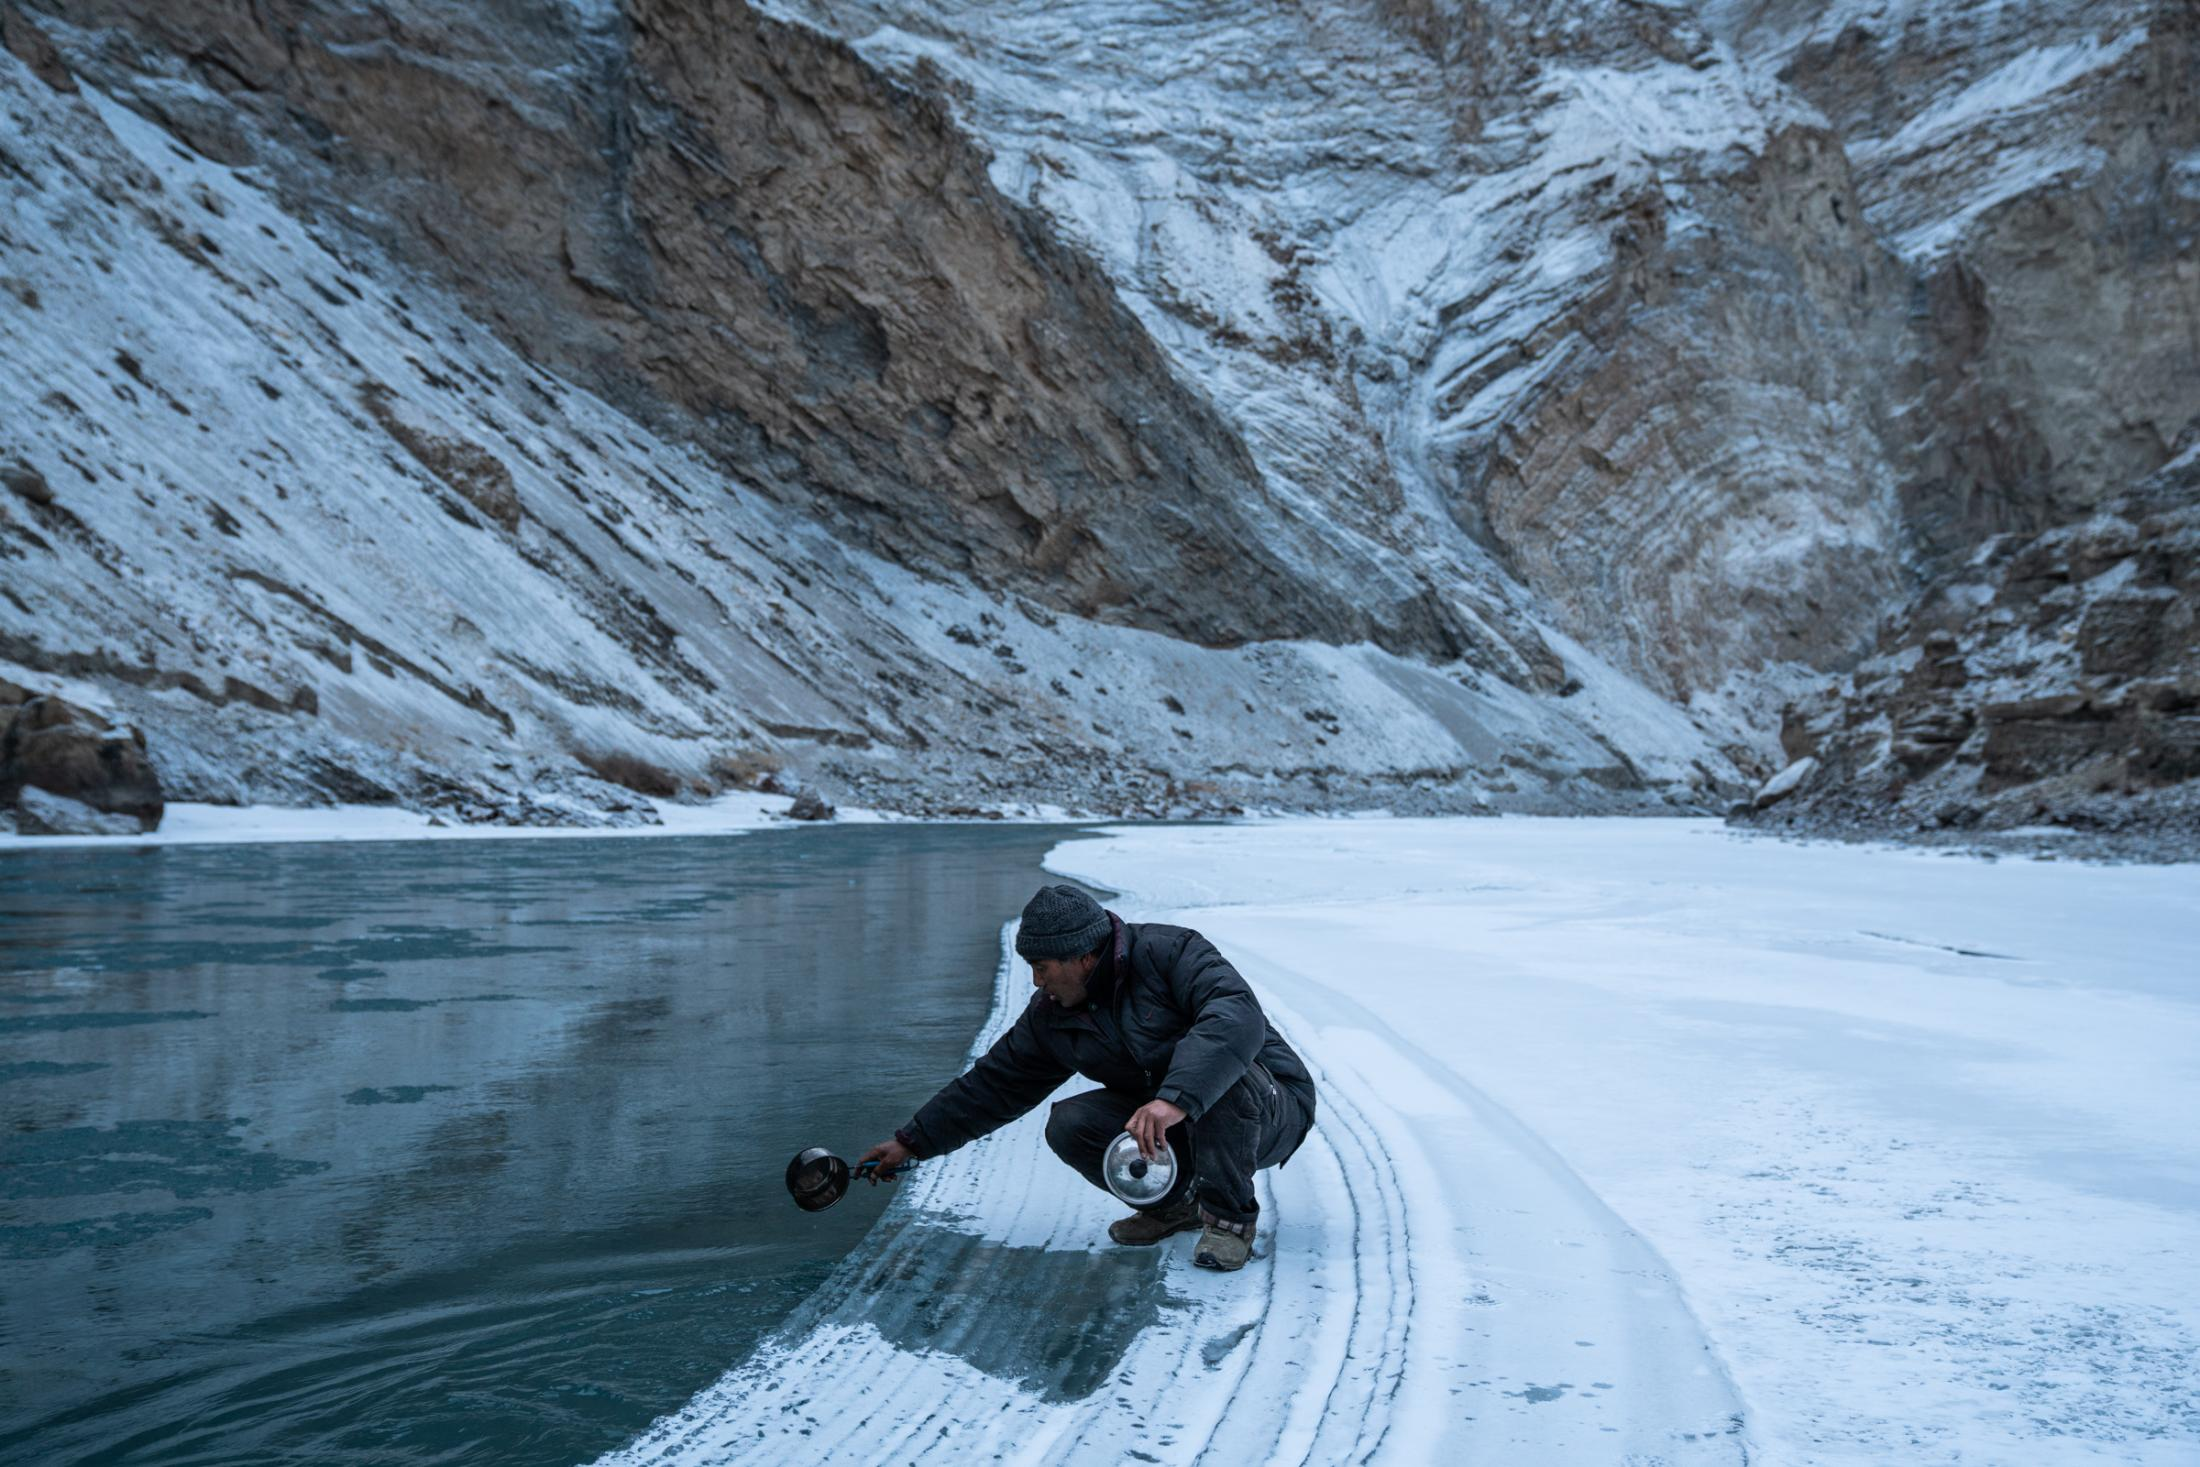 Collecting water from an unfrozen part of the river to boil for food.